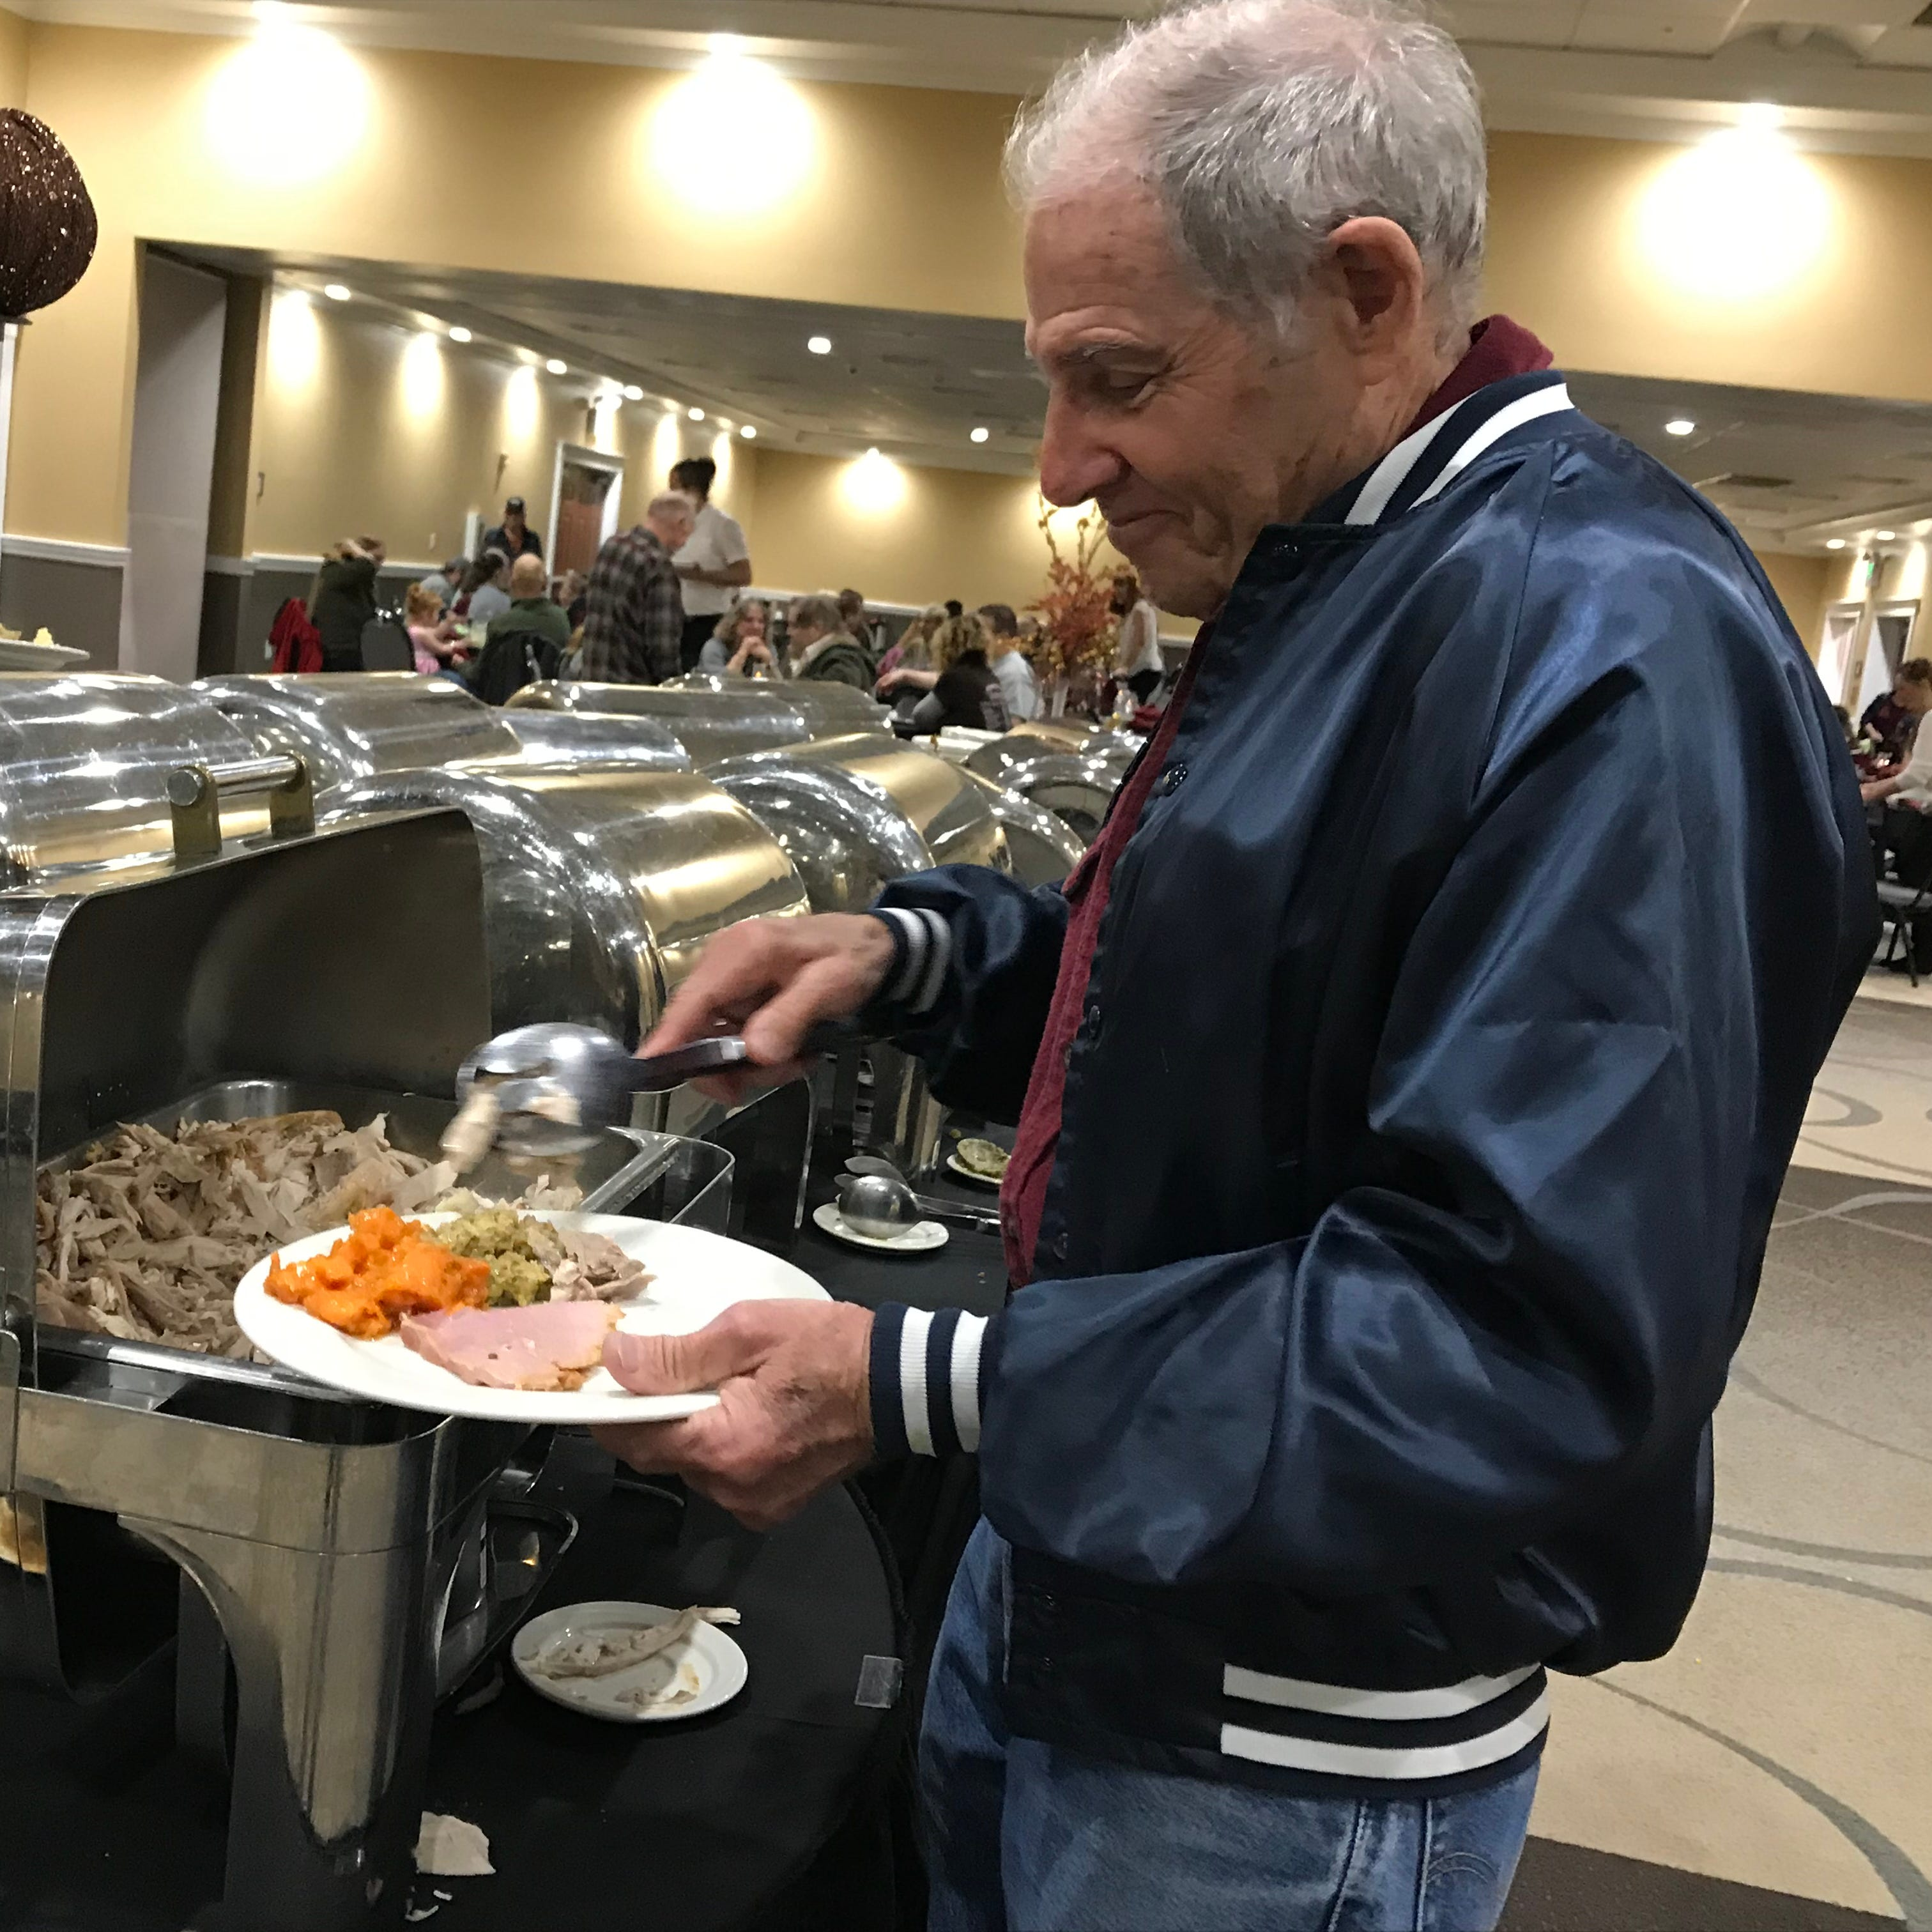 More than 750 people displaced by Carr, Camp wildfires treated to Thanksgiving meal, camaraderie